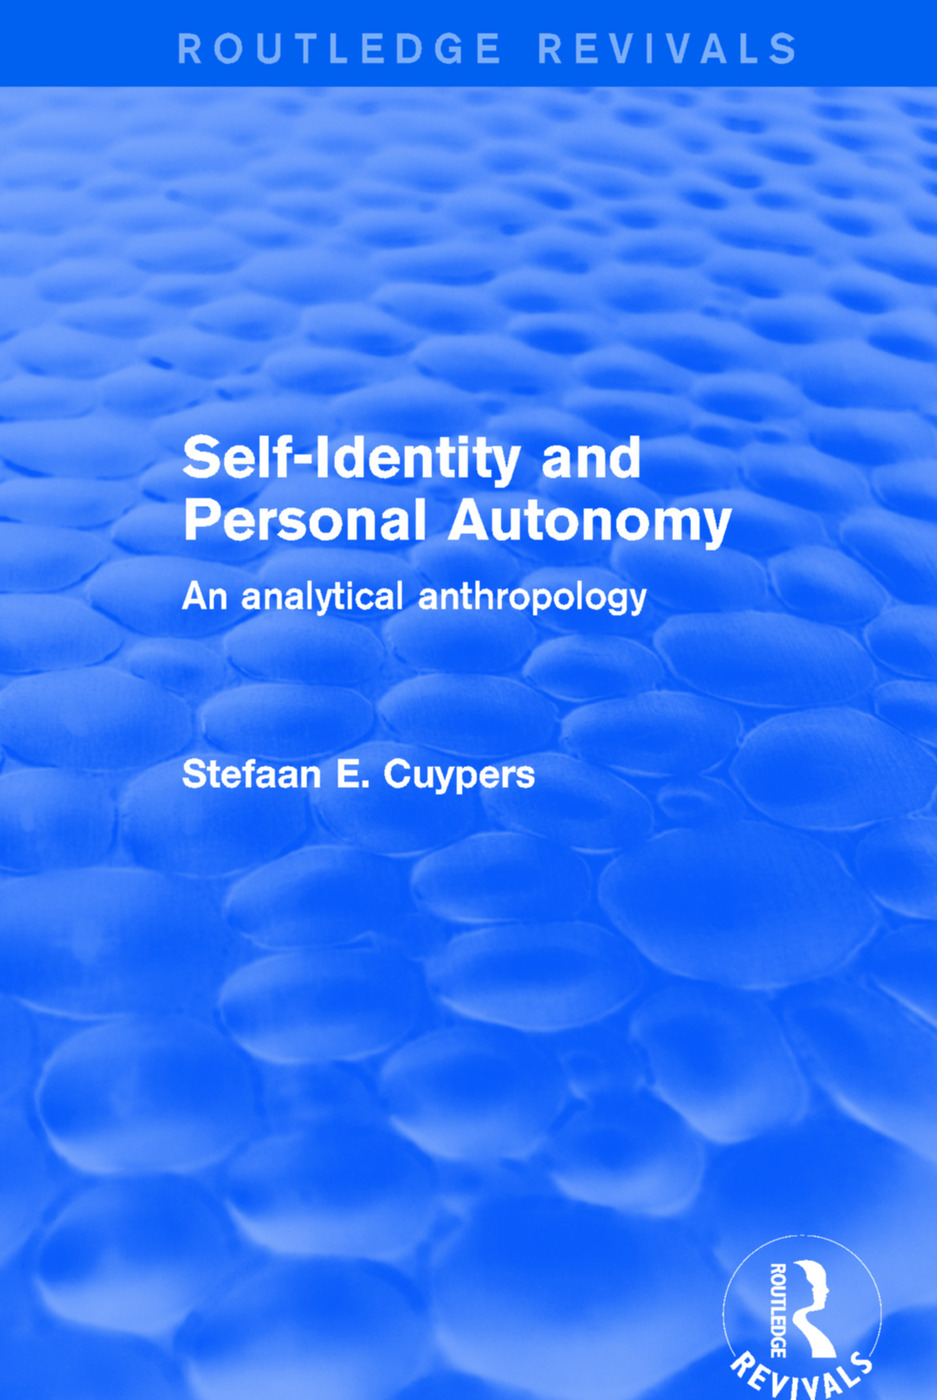 Revival: Self-Identity and Personal Autonomy (2001): An Analytical Anthropology book cover